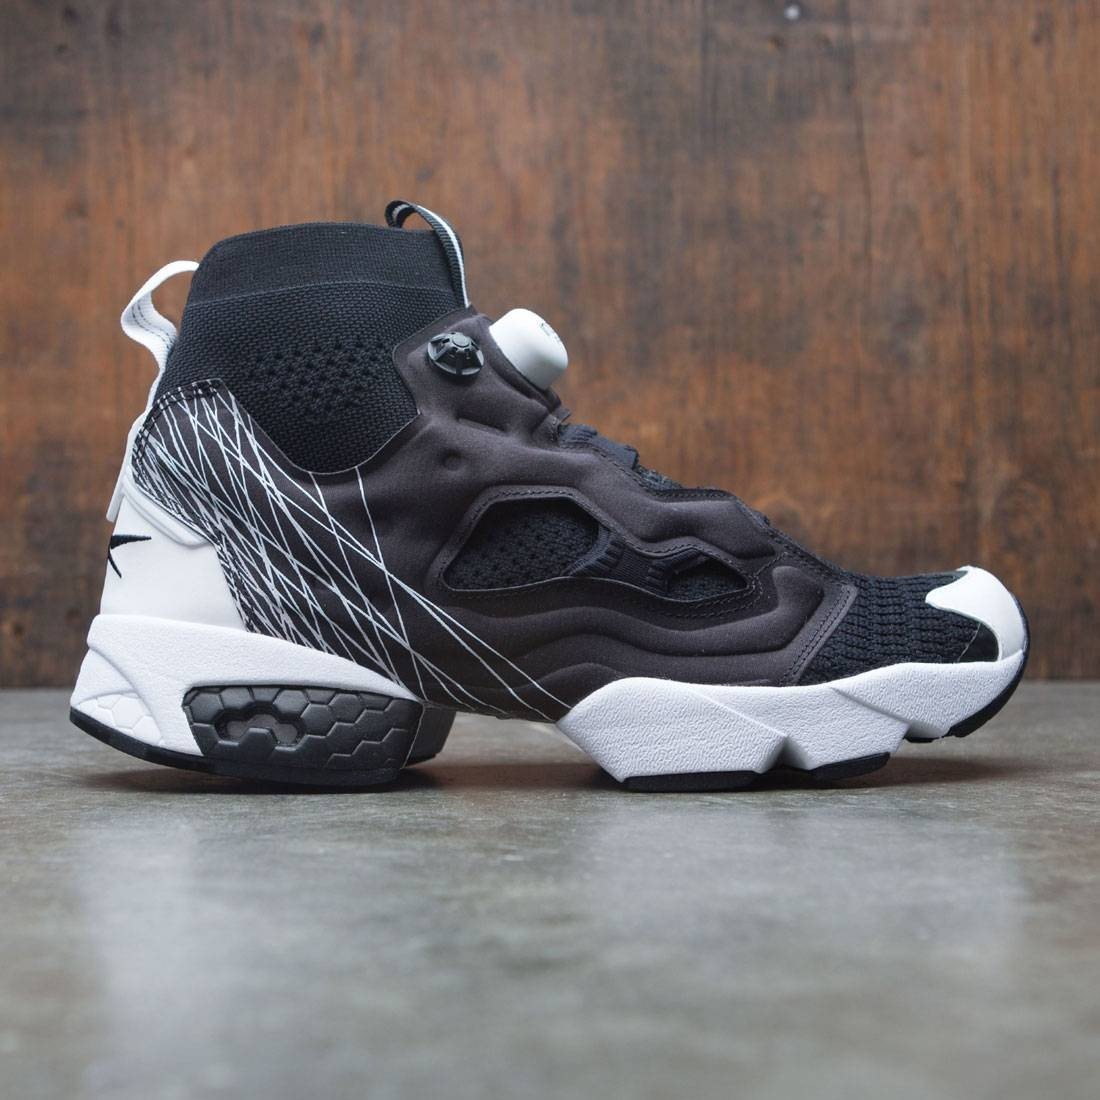 premium selection 5c24e 3d582 Reebok Men InstaPump Fury OG Ultraknit TL (black   white)